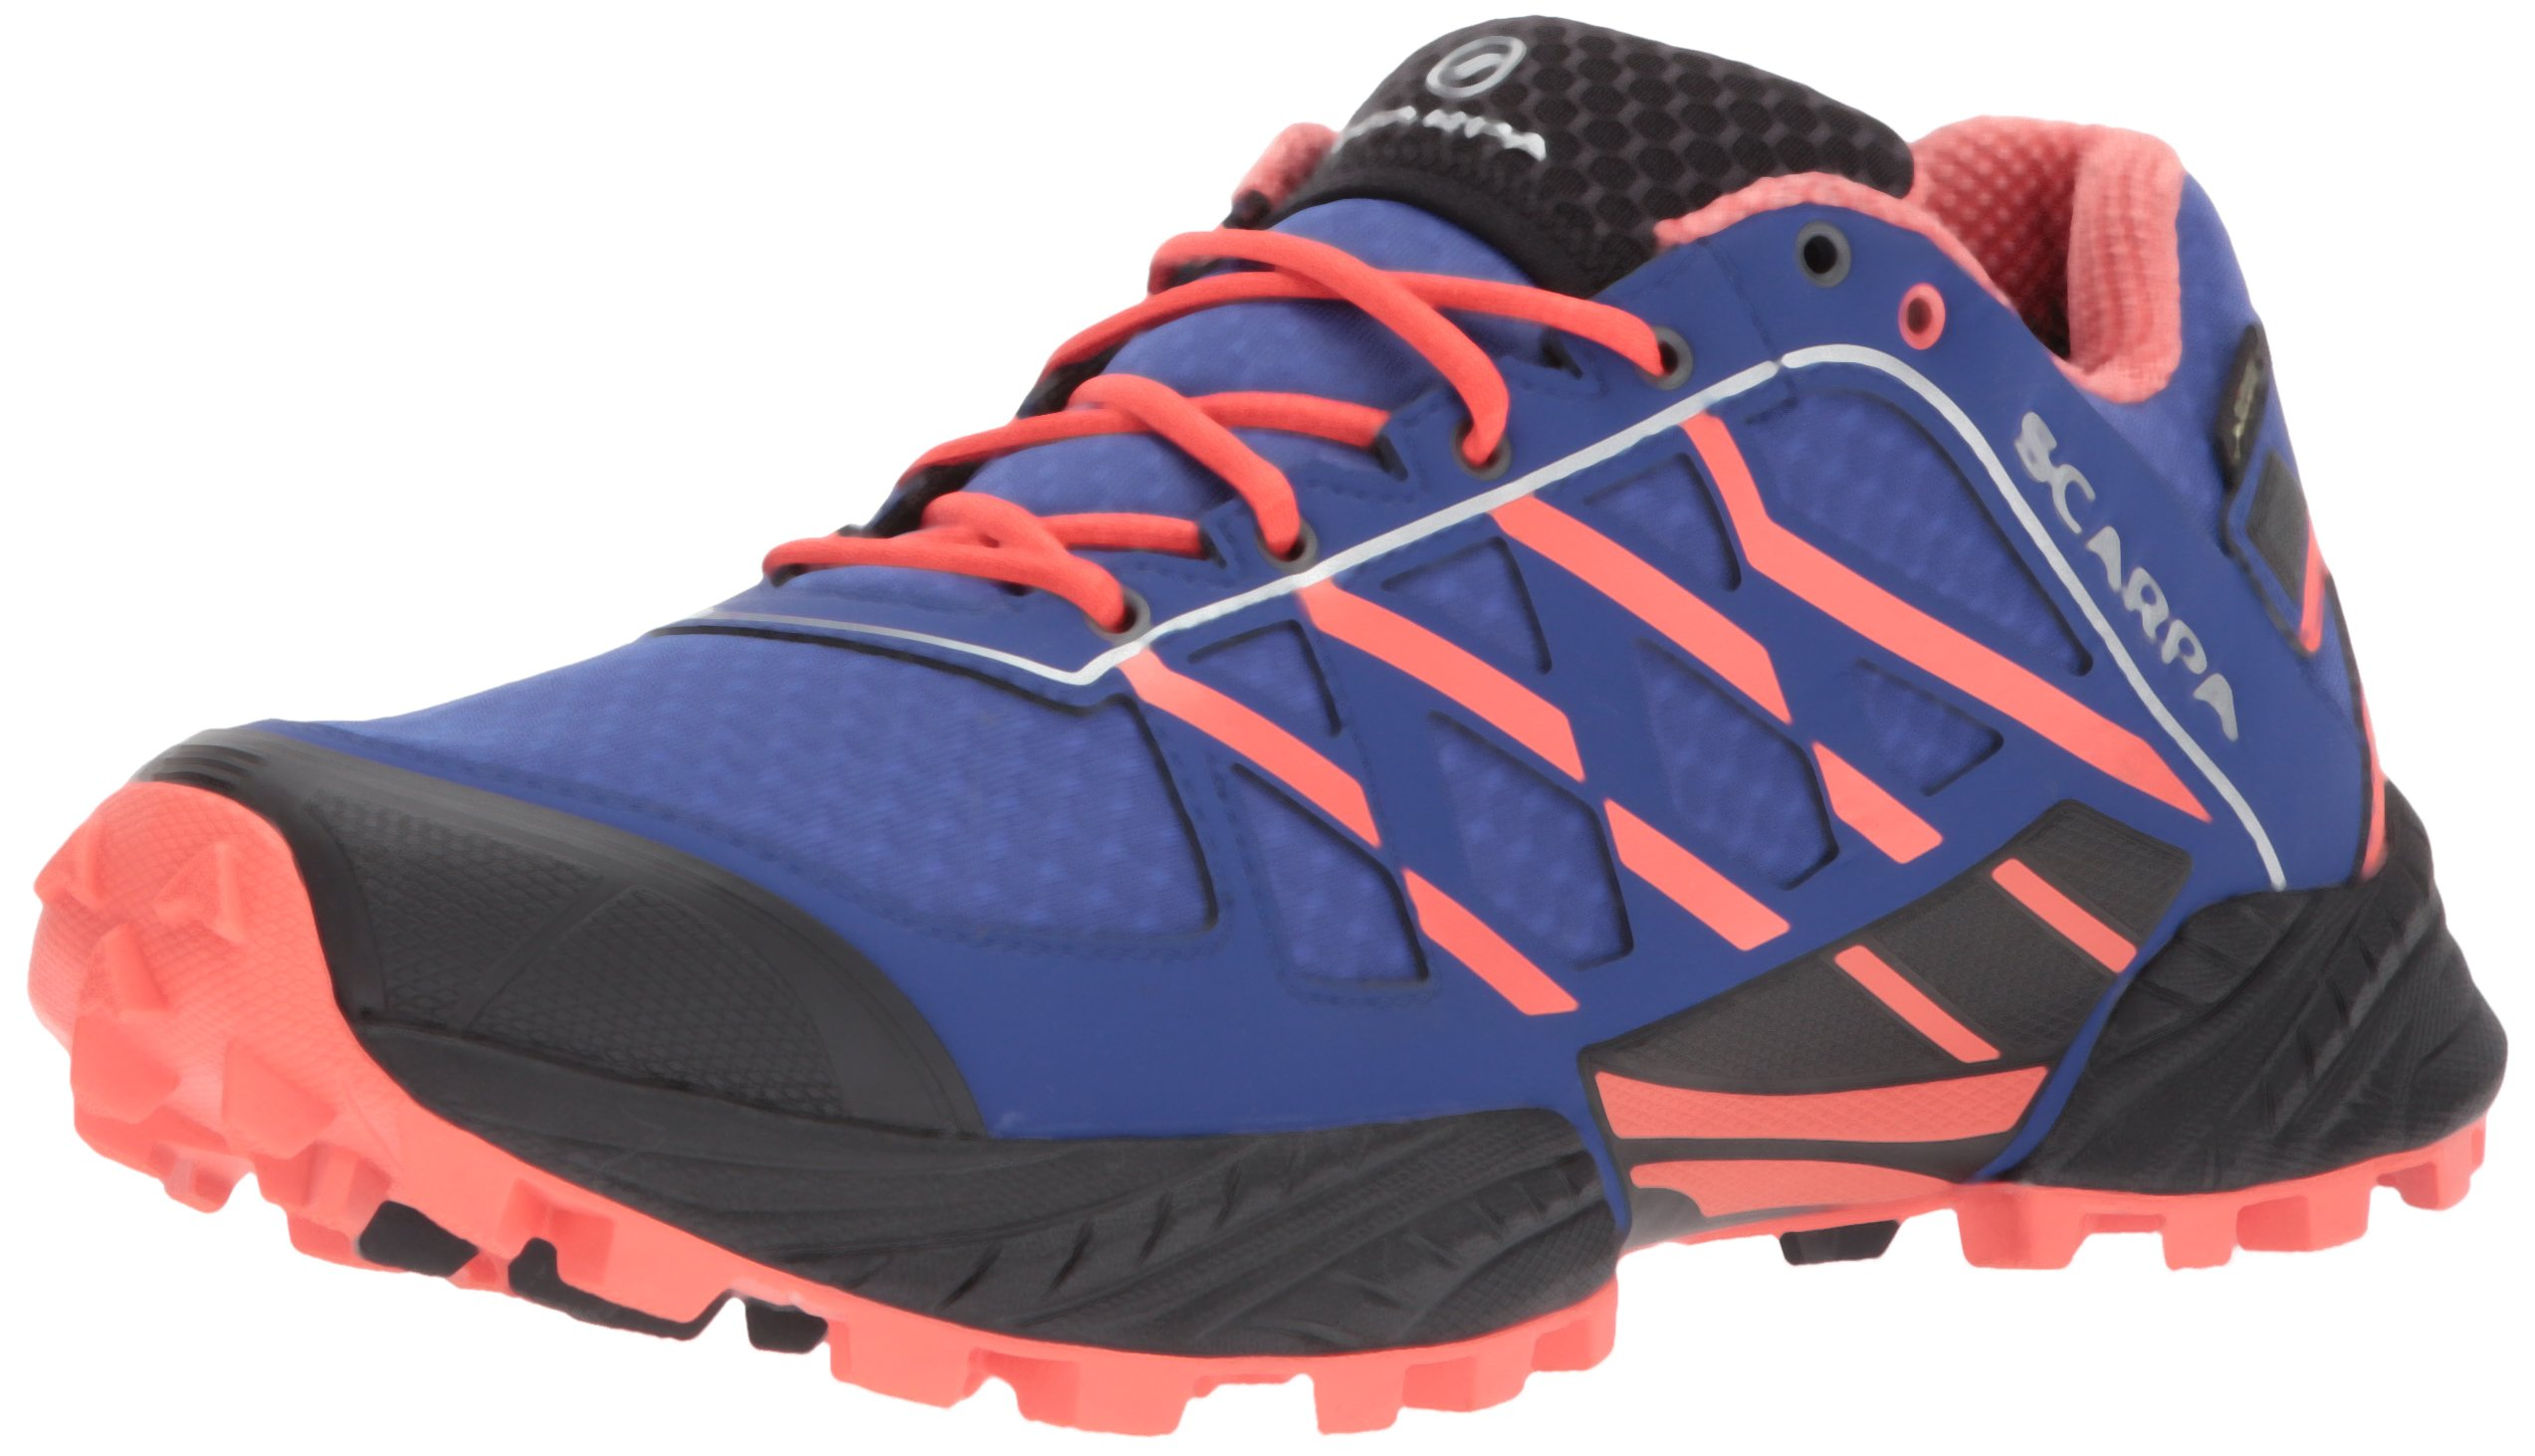 SCARPA Women's Neutron GTX Trail Running Shoe Backpacking Boot, Clematis/Coral Red, 37.5 EU/6.5 M US